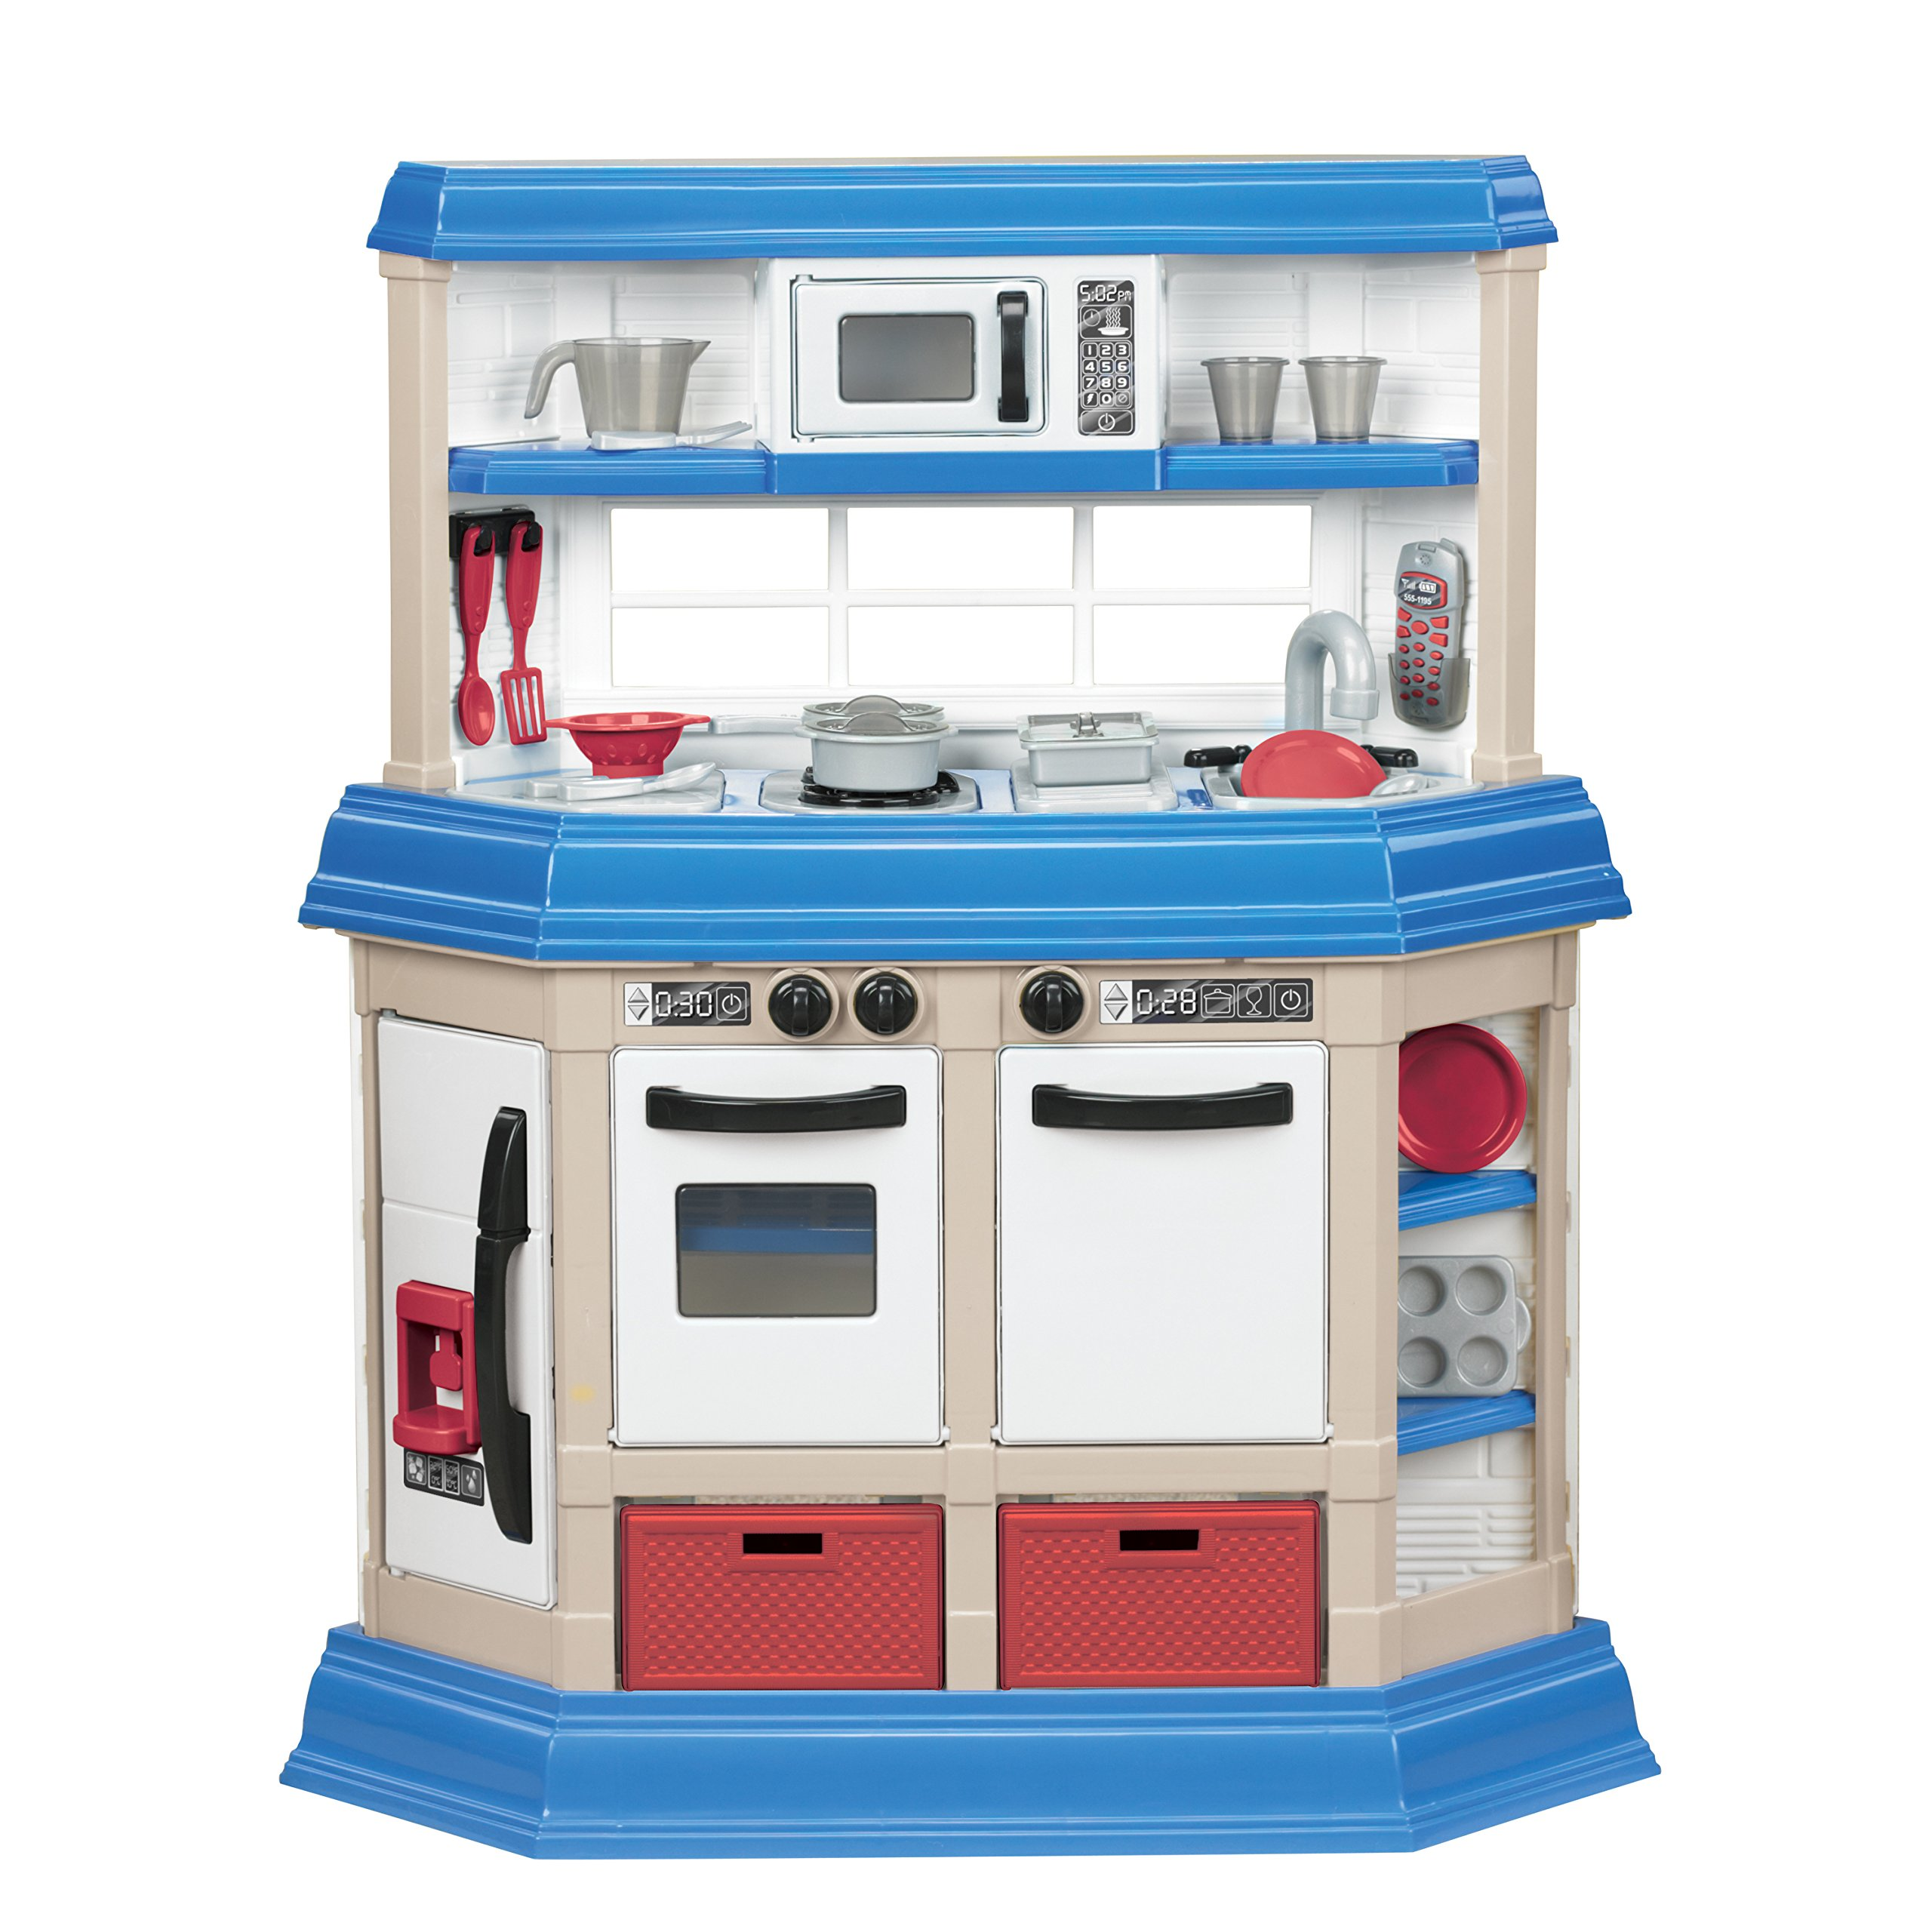 American Plastic Toys Cookin' Kitchen by American Plastic Toys (Image #1)